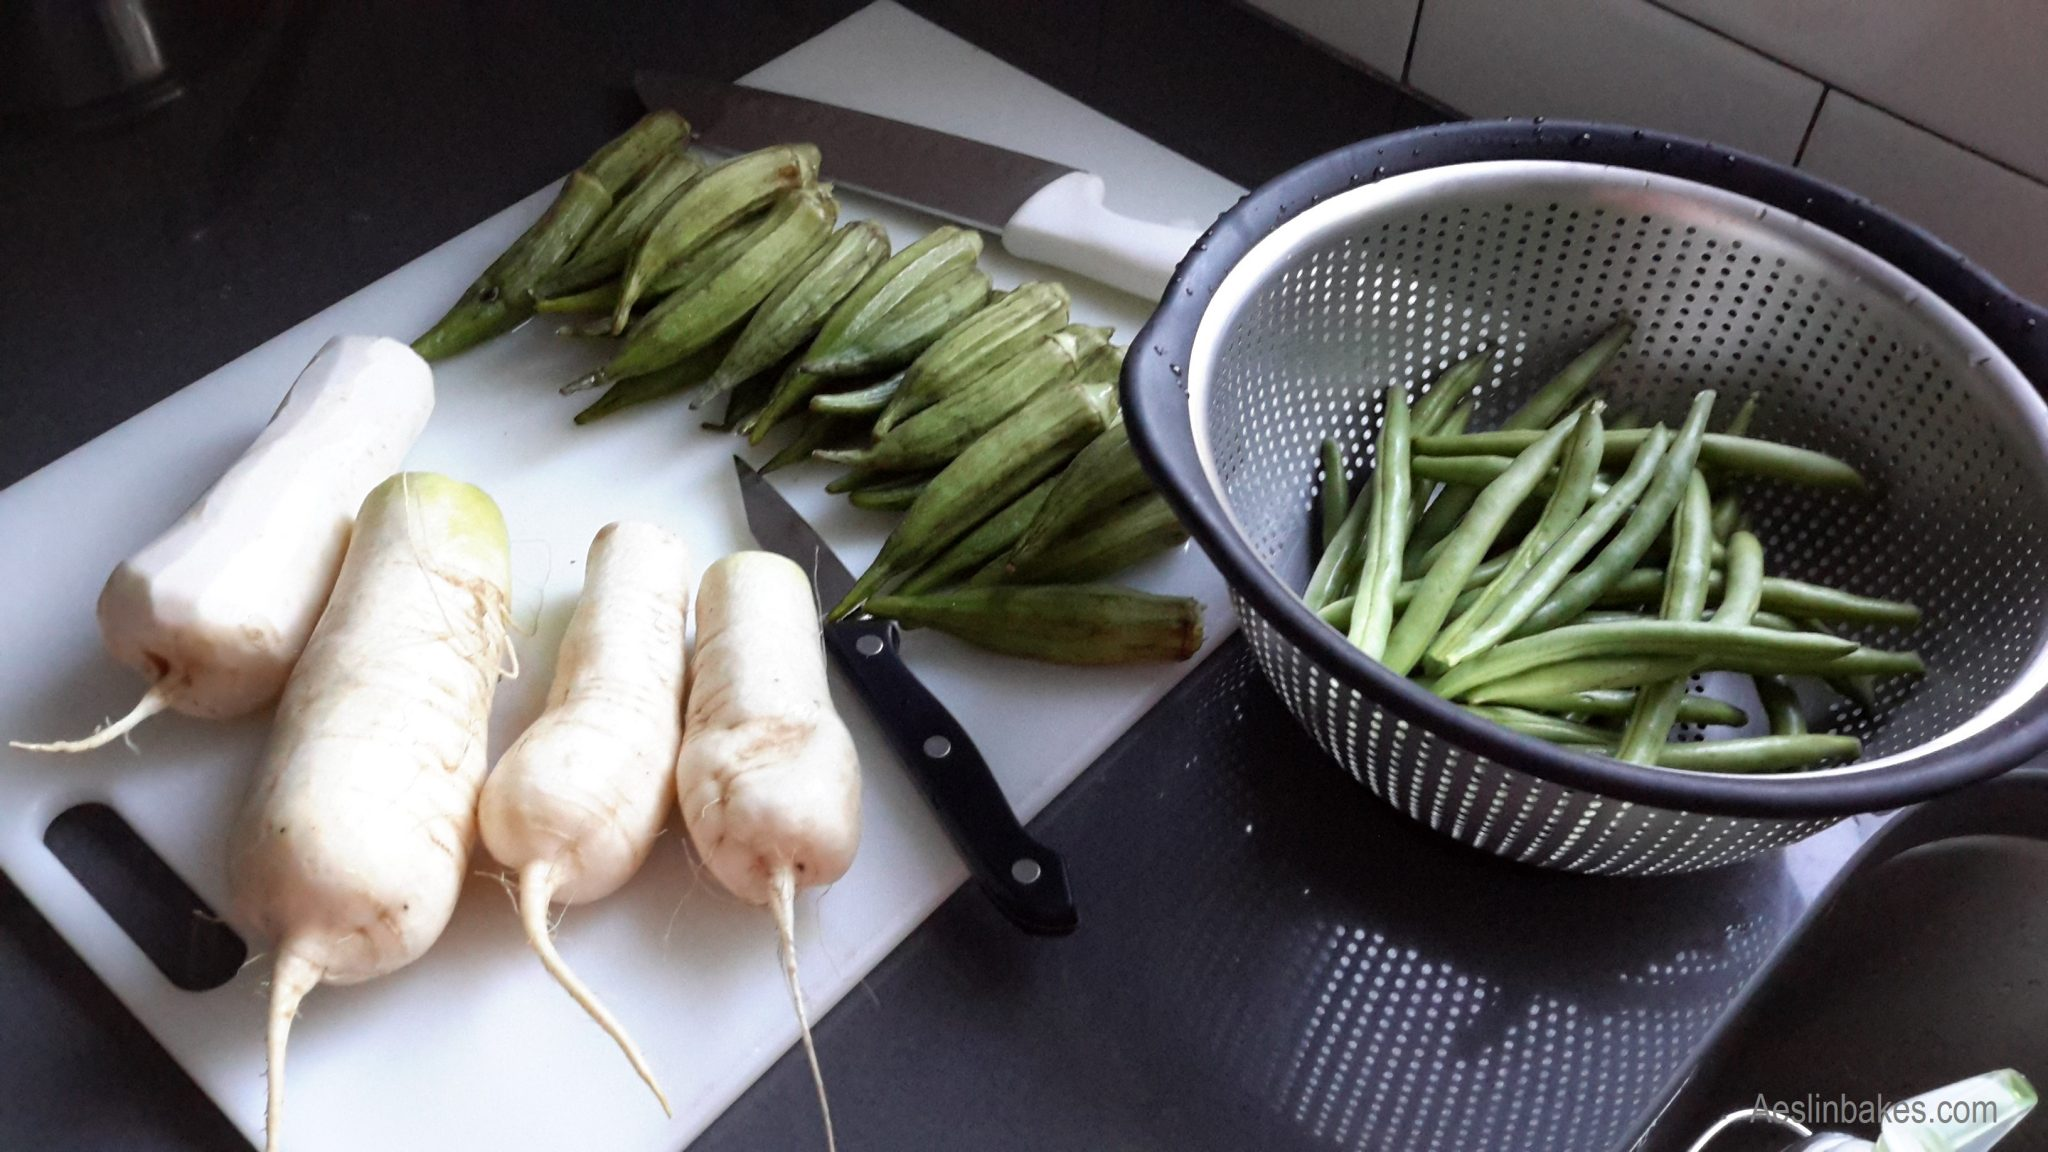 baby radishes, okra and green beans